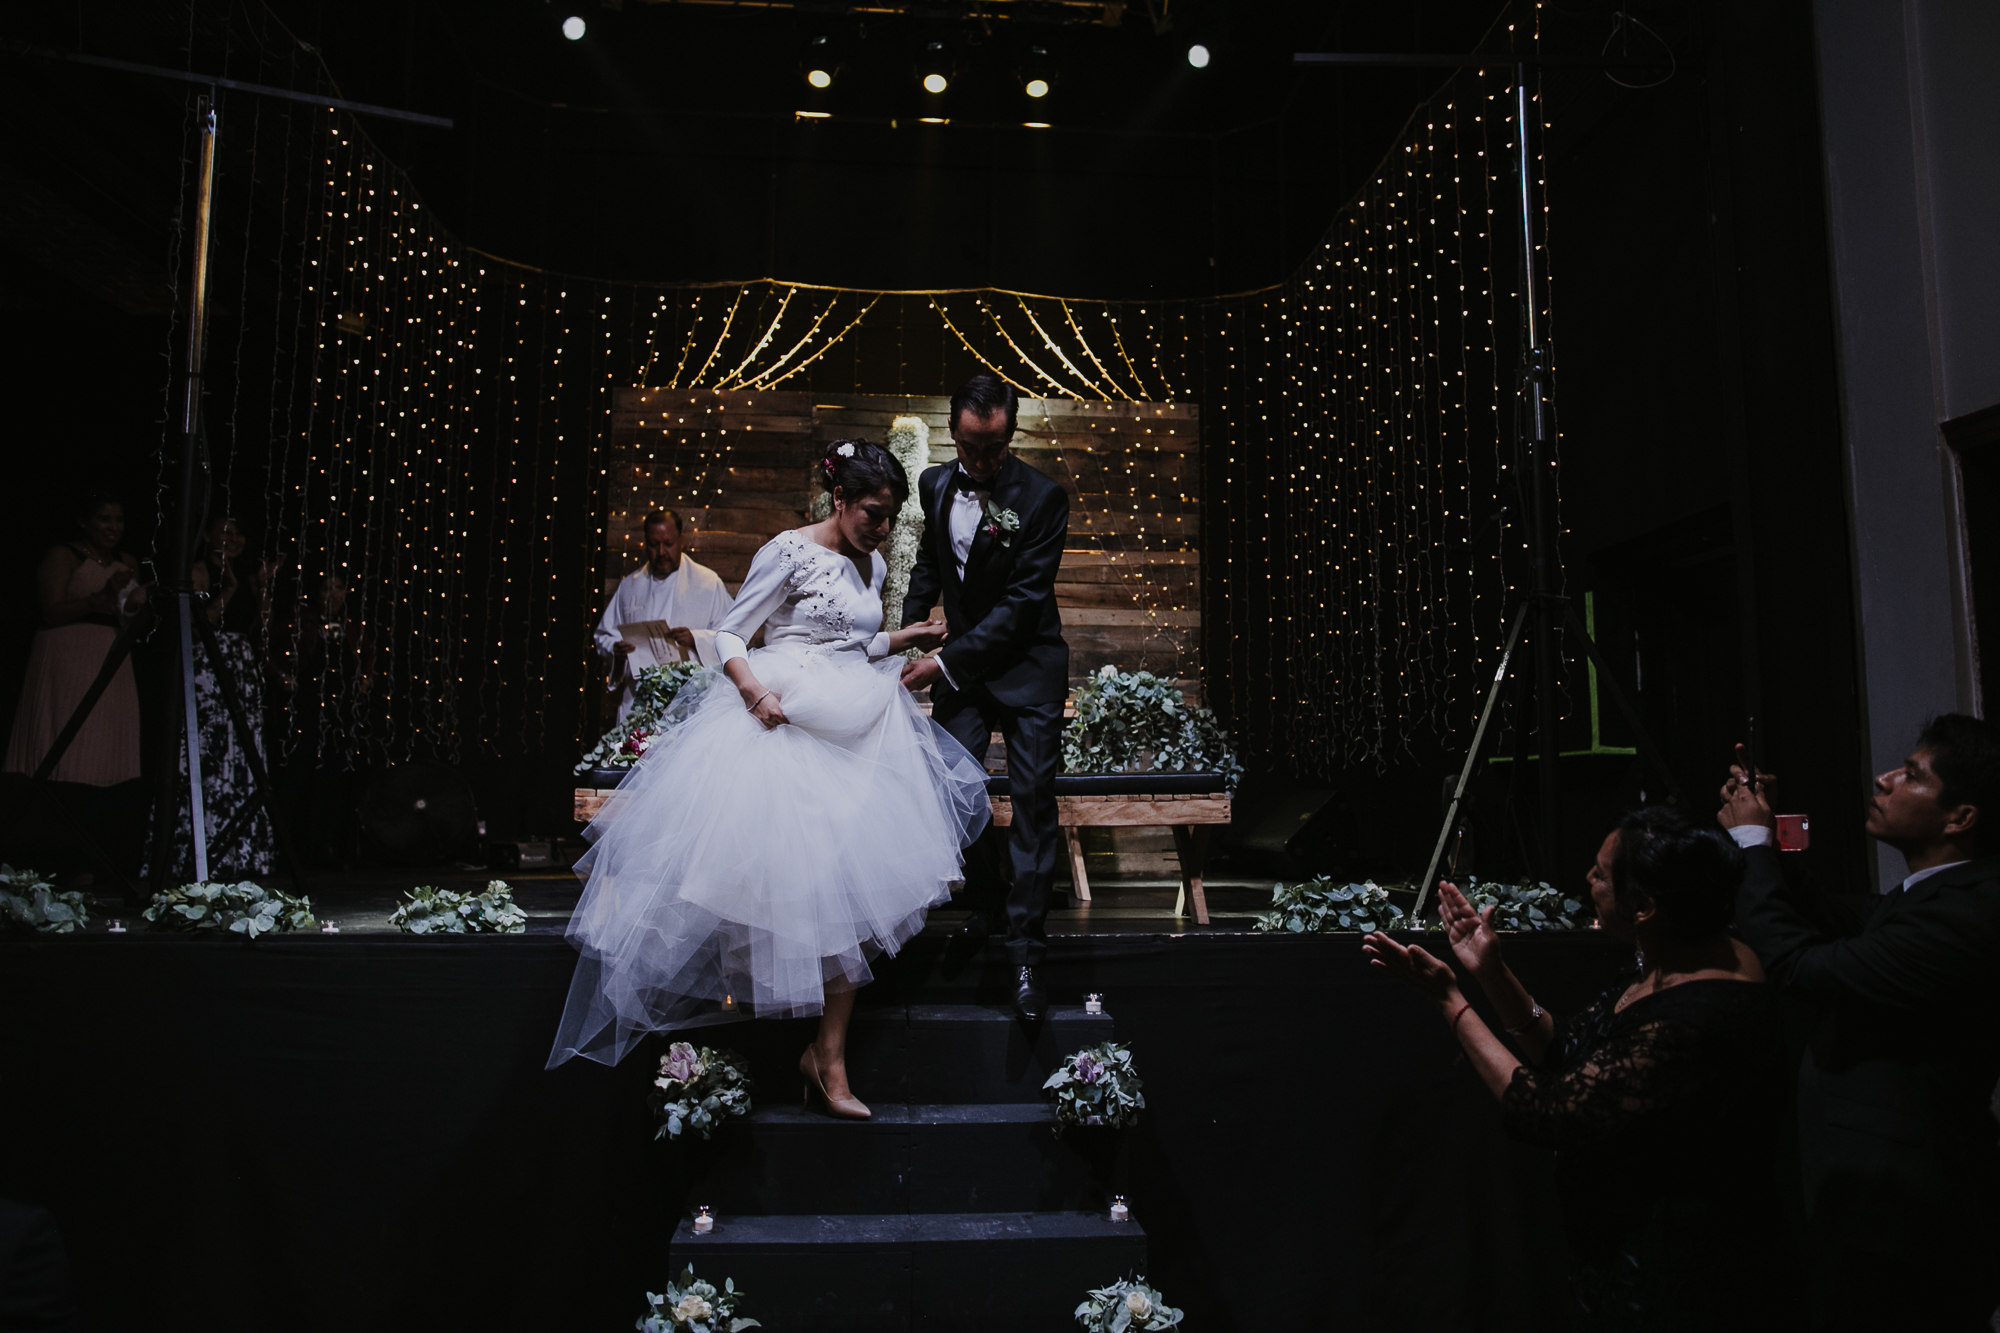 alfonso_flores_alternative_wedding_photographer_cdmx_roma_condesa_foro_indie_gissyotto-82.jpg